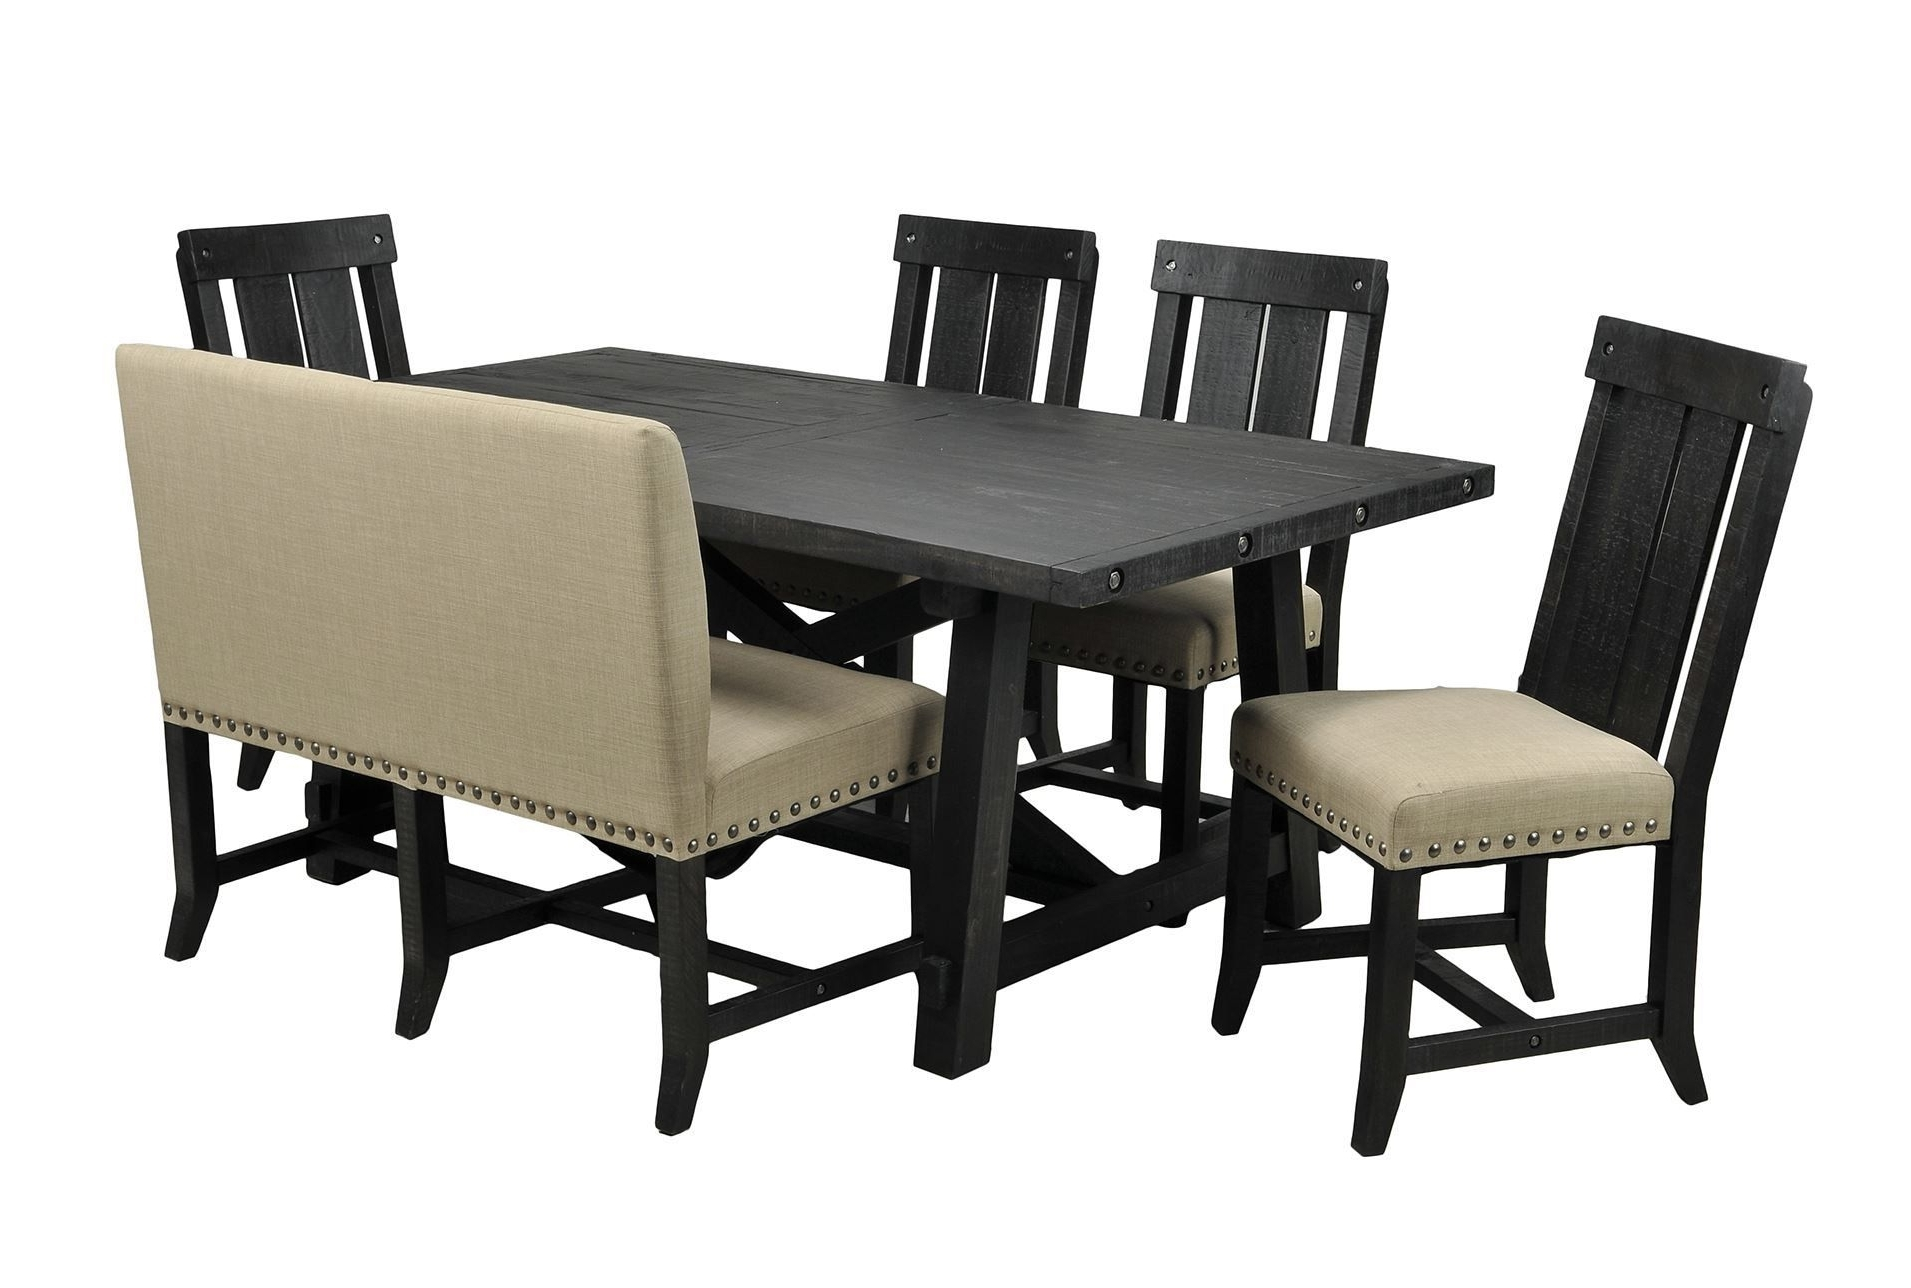 Jaxon 6 Piece Rectangle Dining Set W/bench & Wood Chairs, Café With Best And Newest Jaxon 6 Piece Rectangle Dining Sets With Bench & Uph Chairs (View 5 of 25)